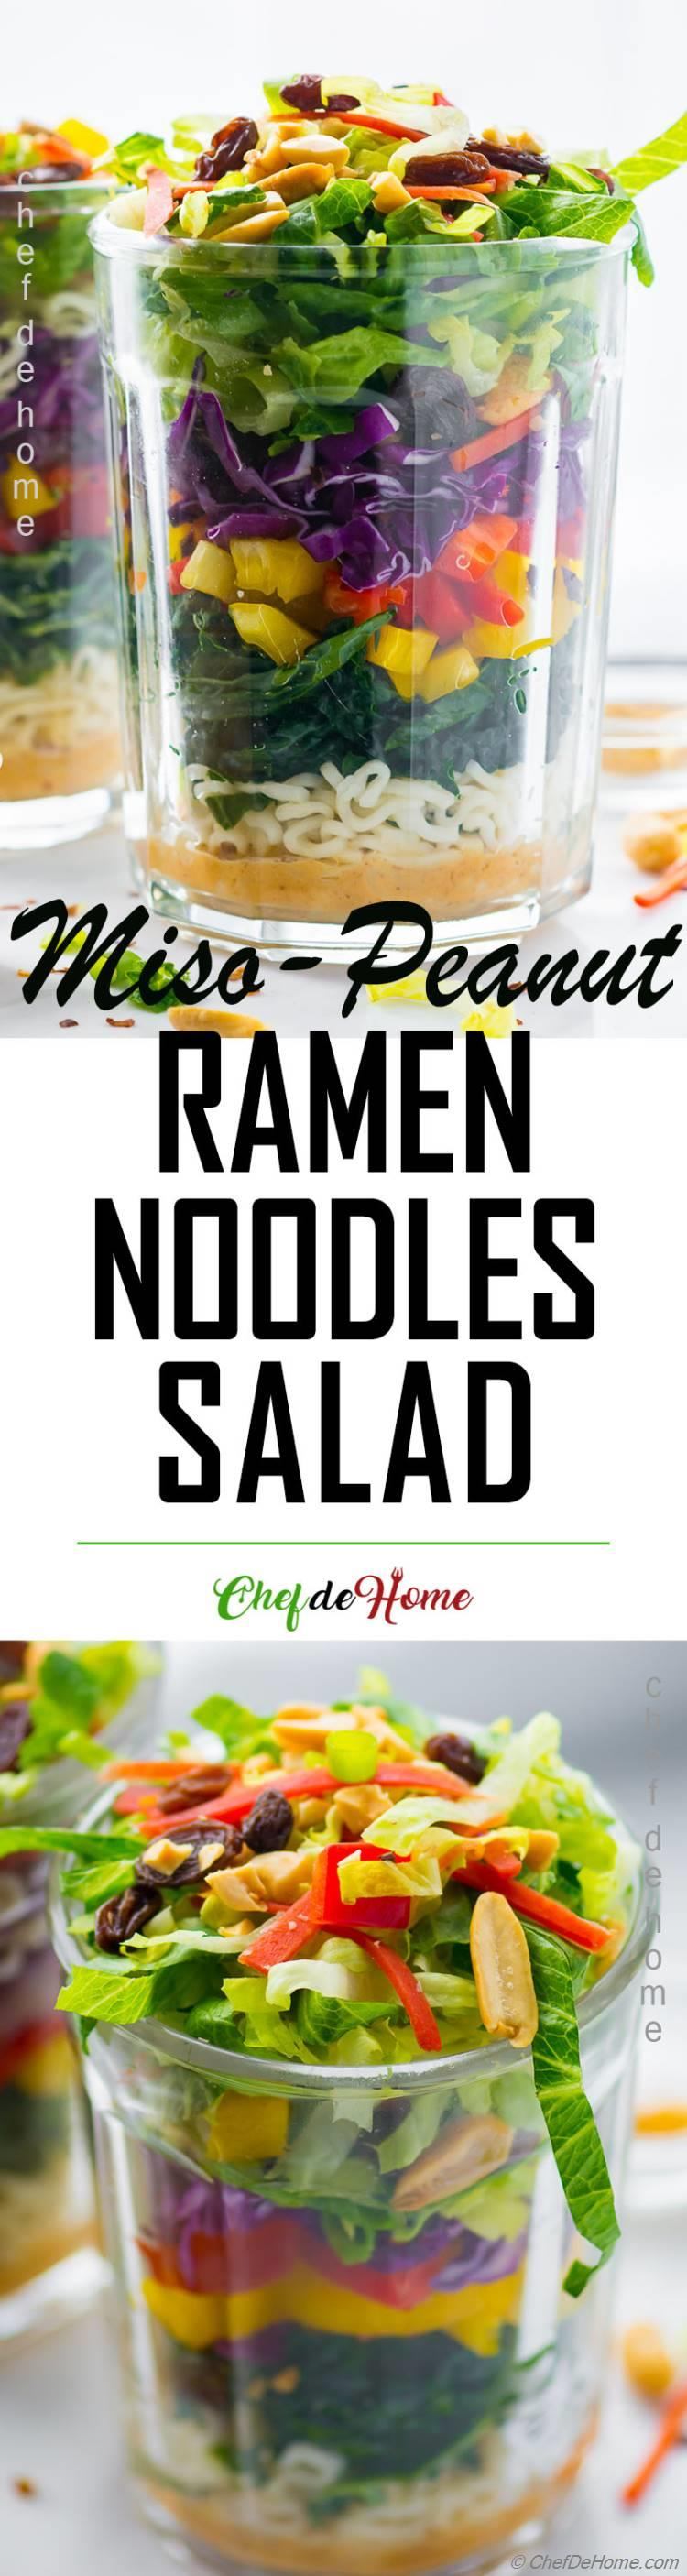 Miso Peanut Asian Noodles Salad in a Jar for Summer Picnic